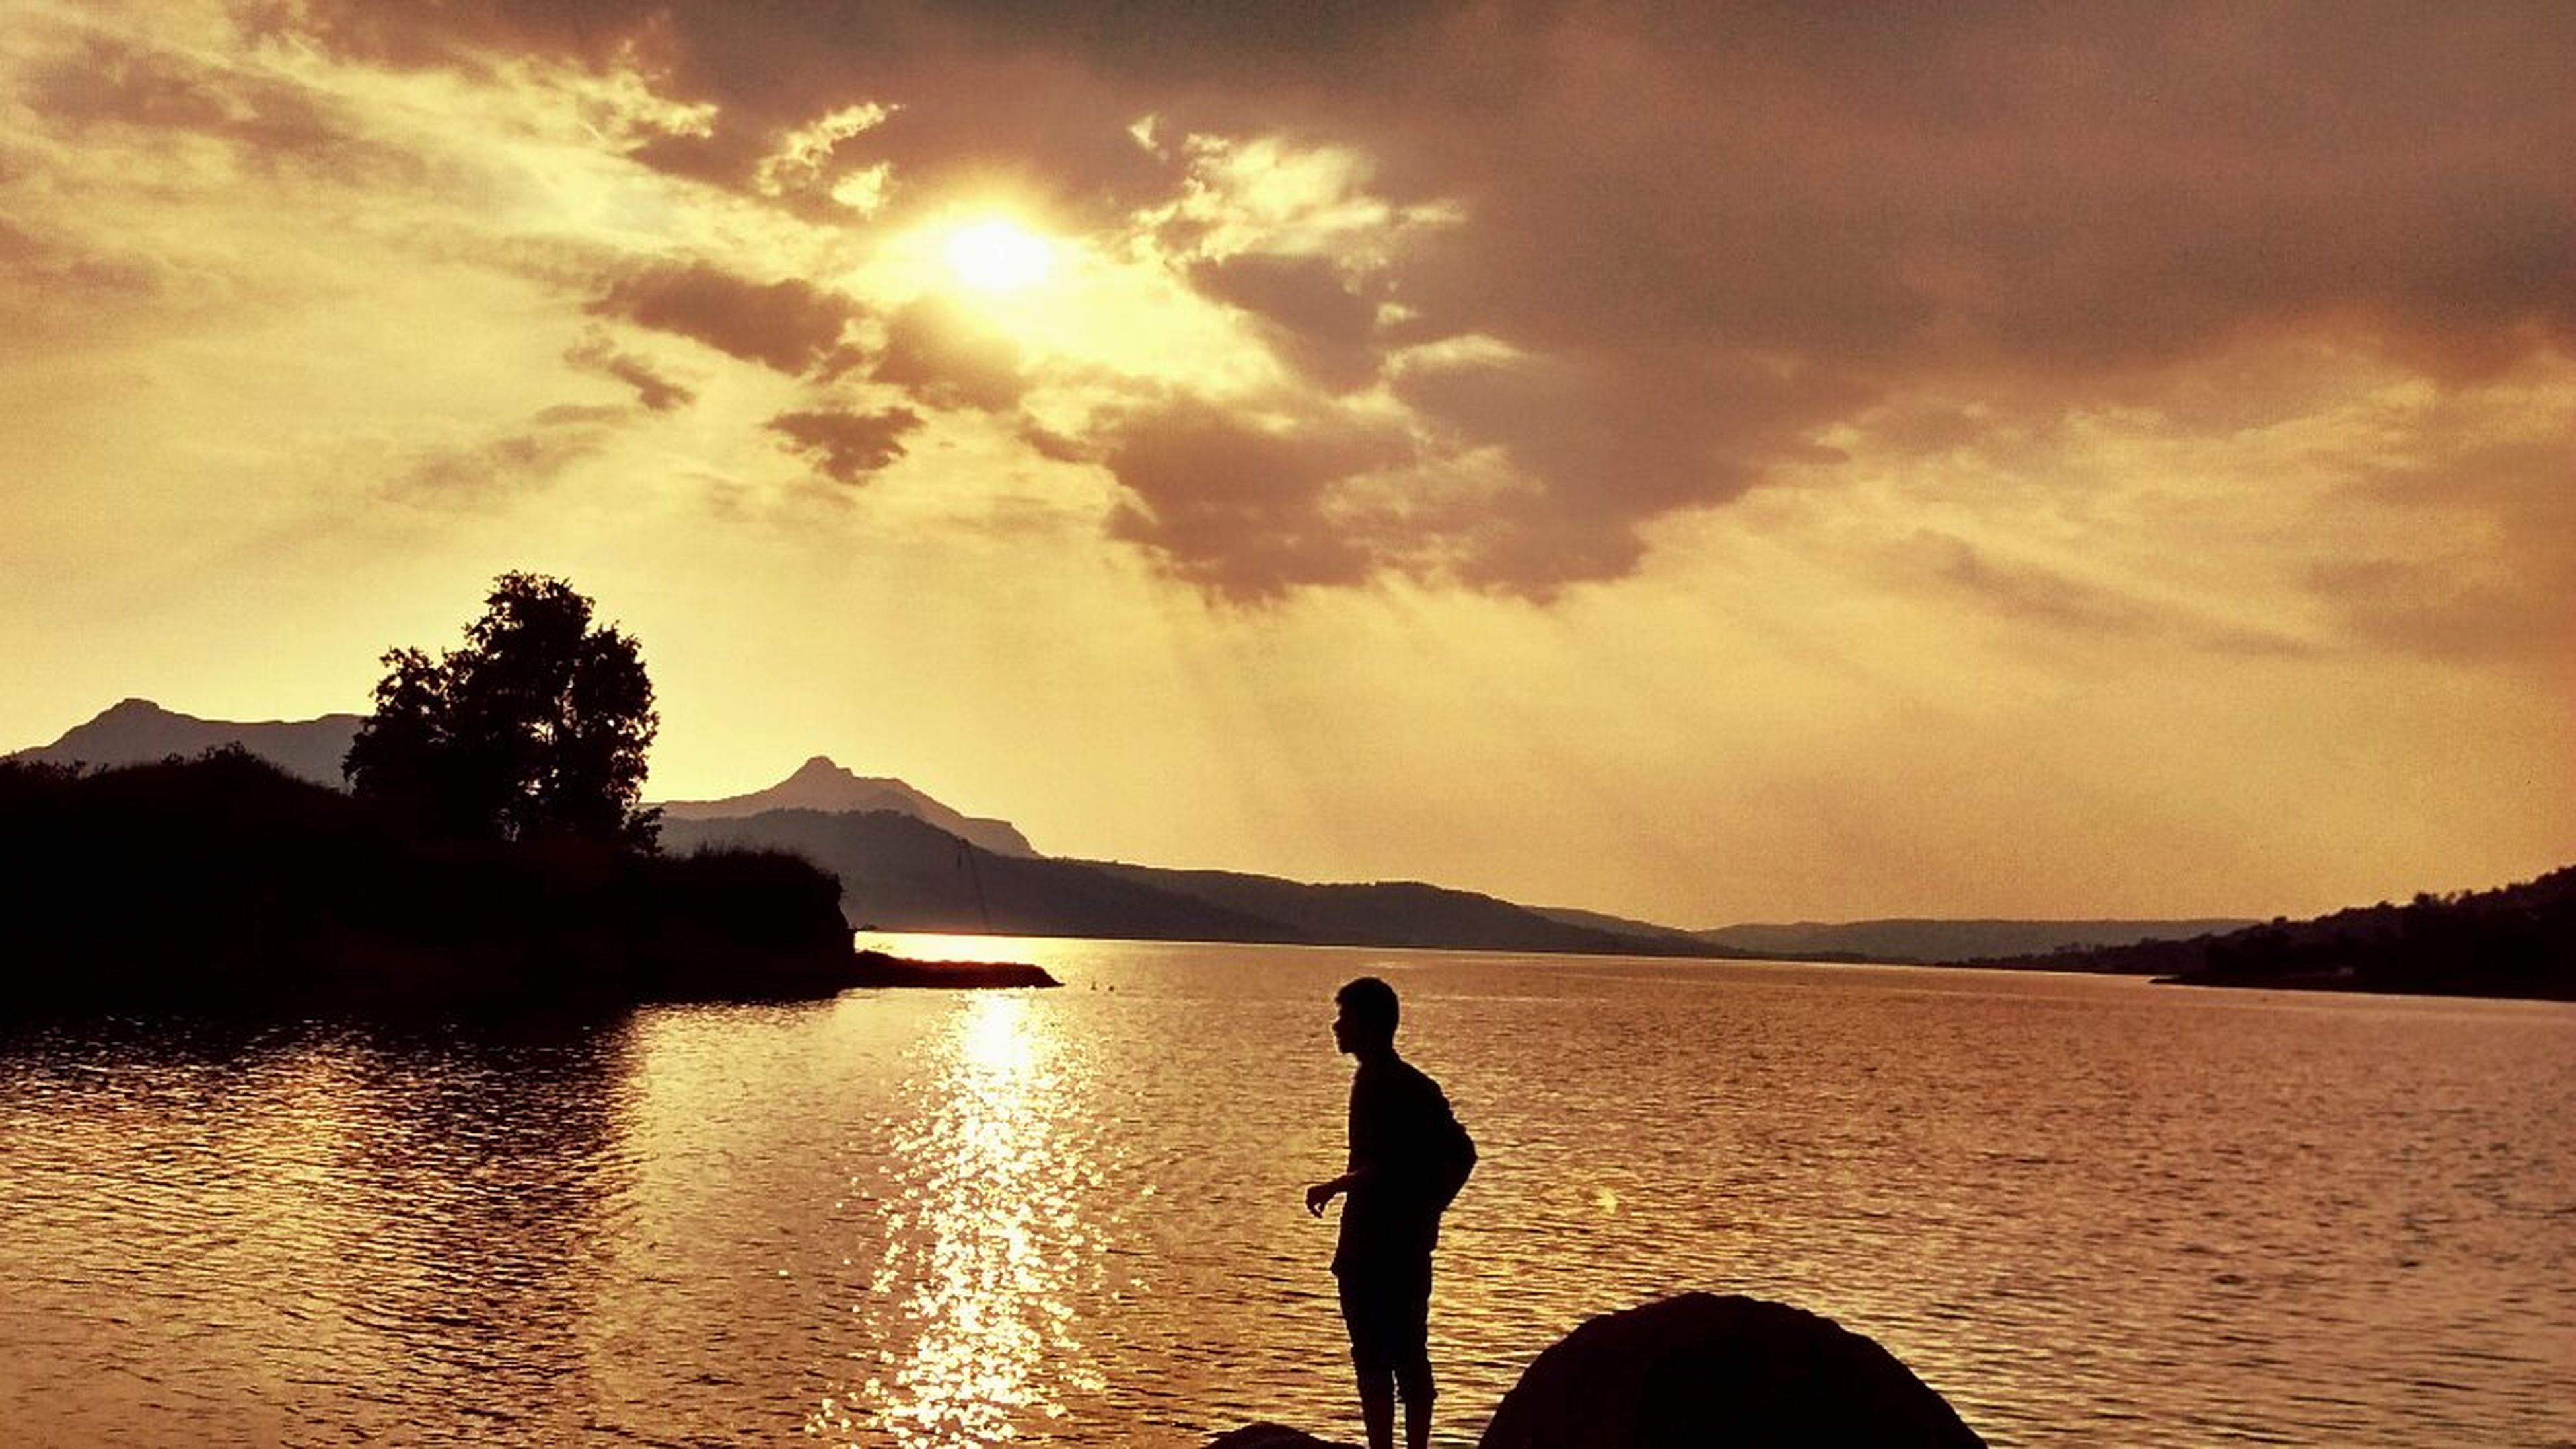 water, silhouette, sky, tranquil scene, scenics, sunset, tranquility, beauty in nature, nature, cloud - sky, sea, leisure activity, idyllic, lifestyles, standing, sun, mountain, reflection